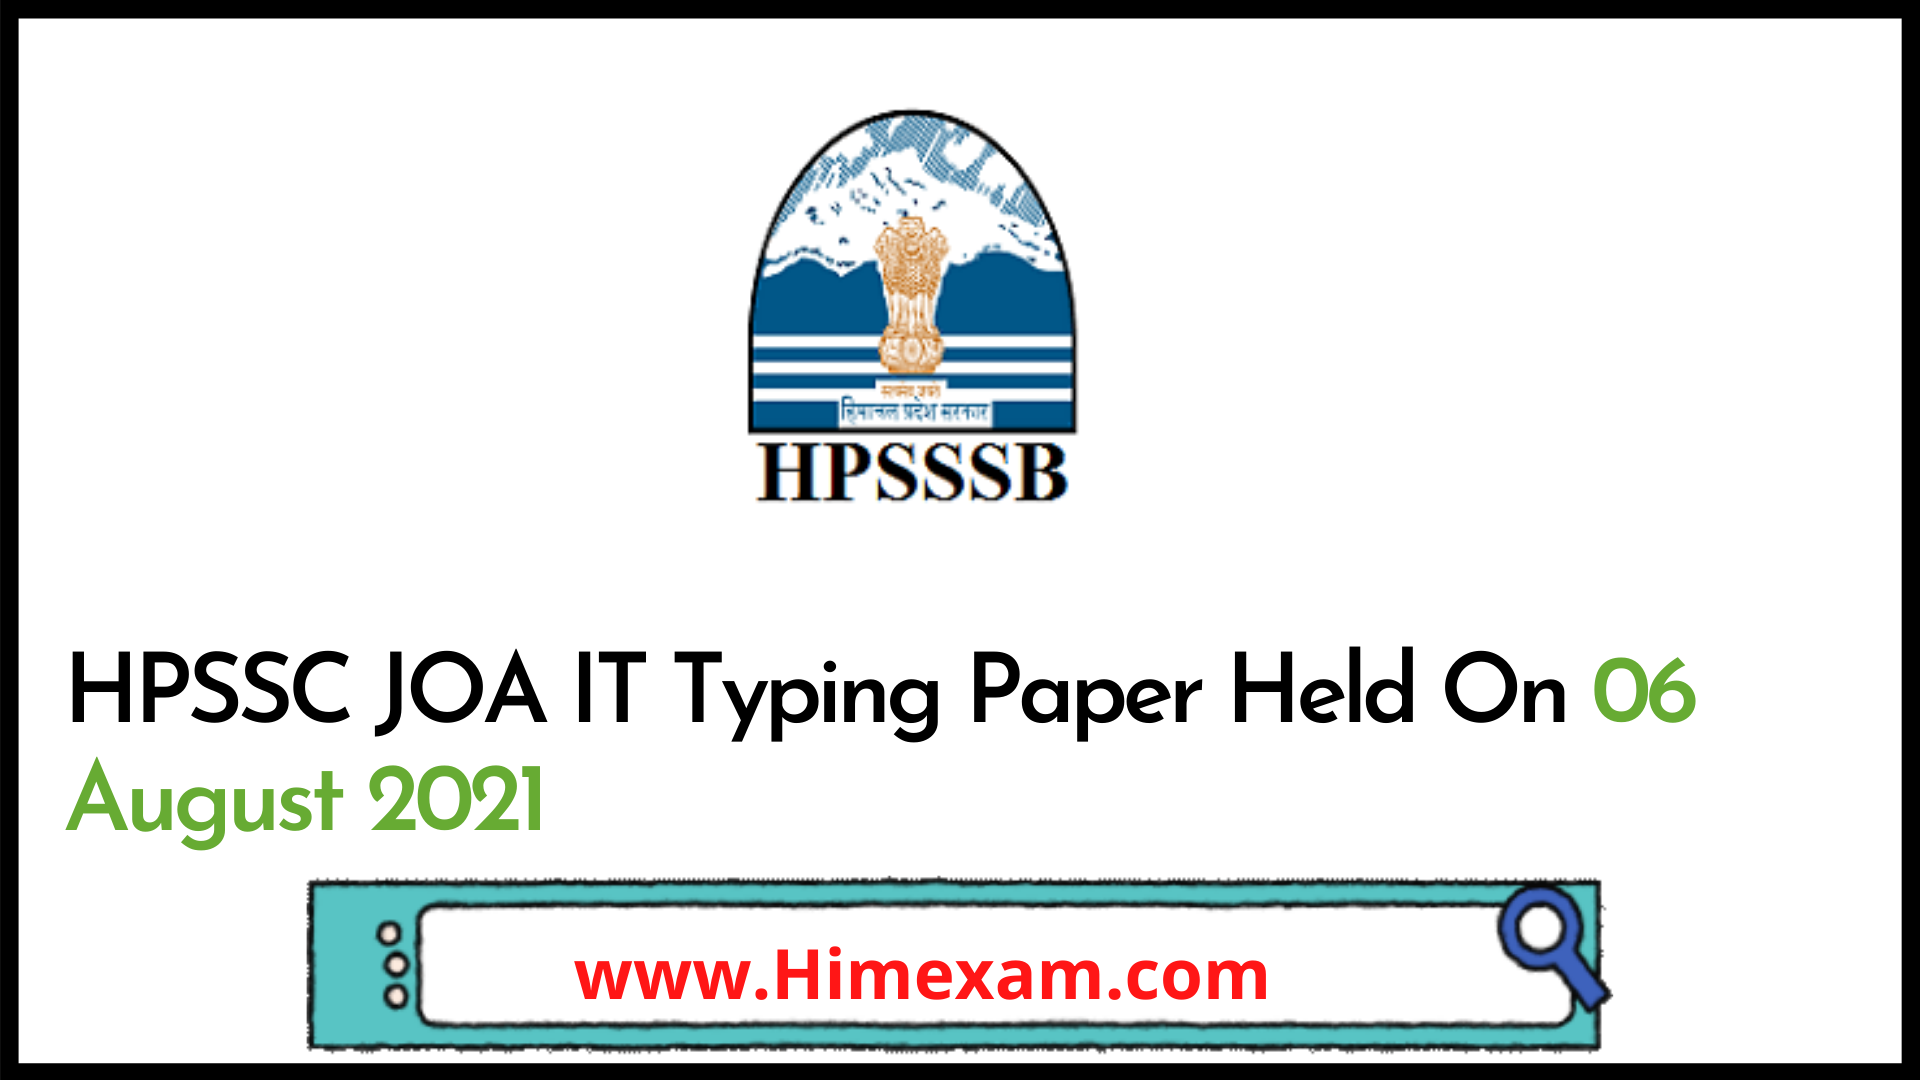 HPSSC JOA IT Typing Paper Held On 06 August 2021